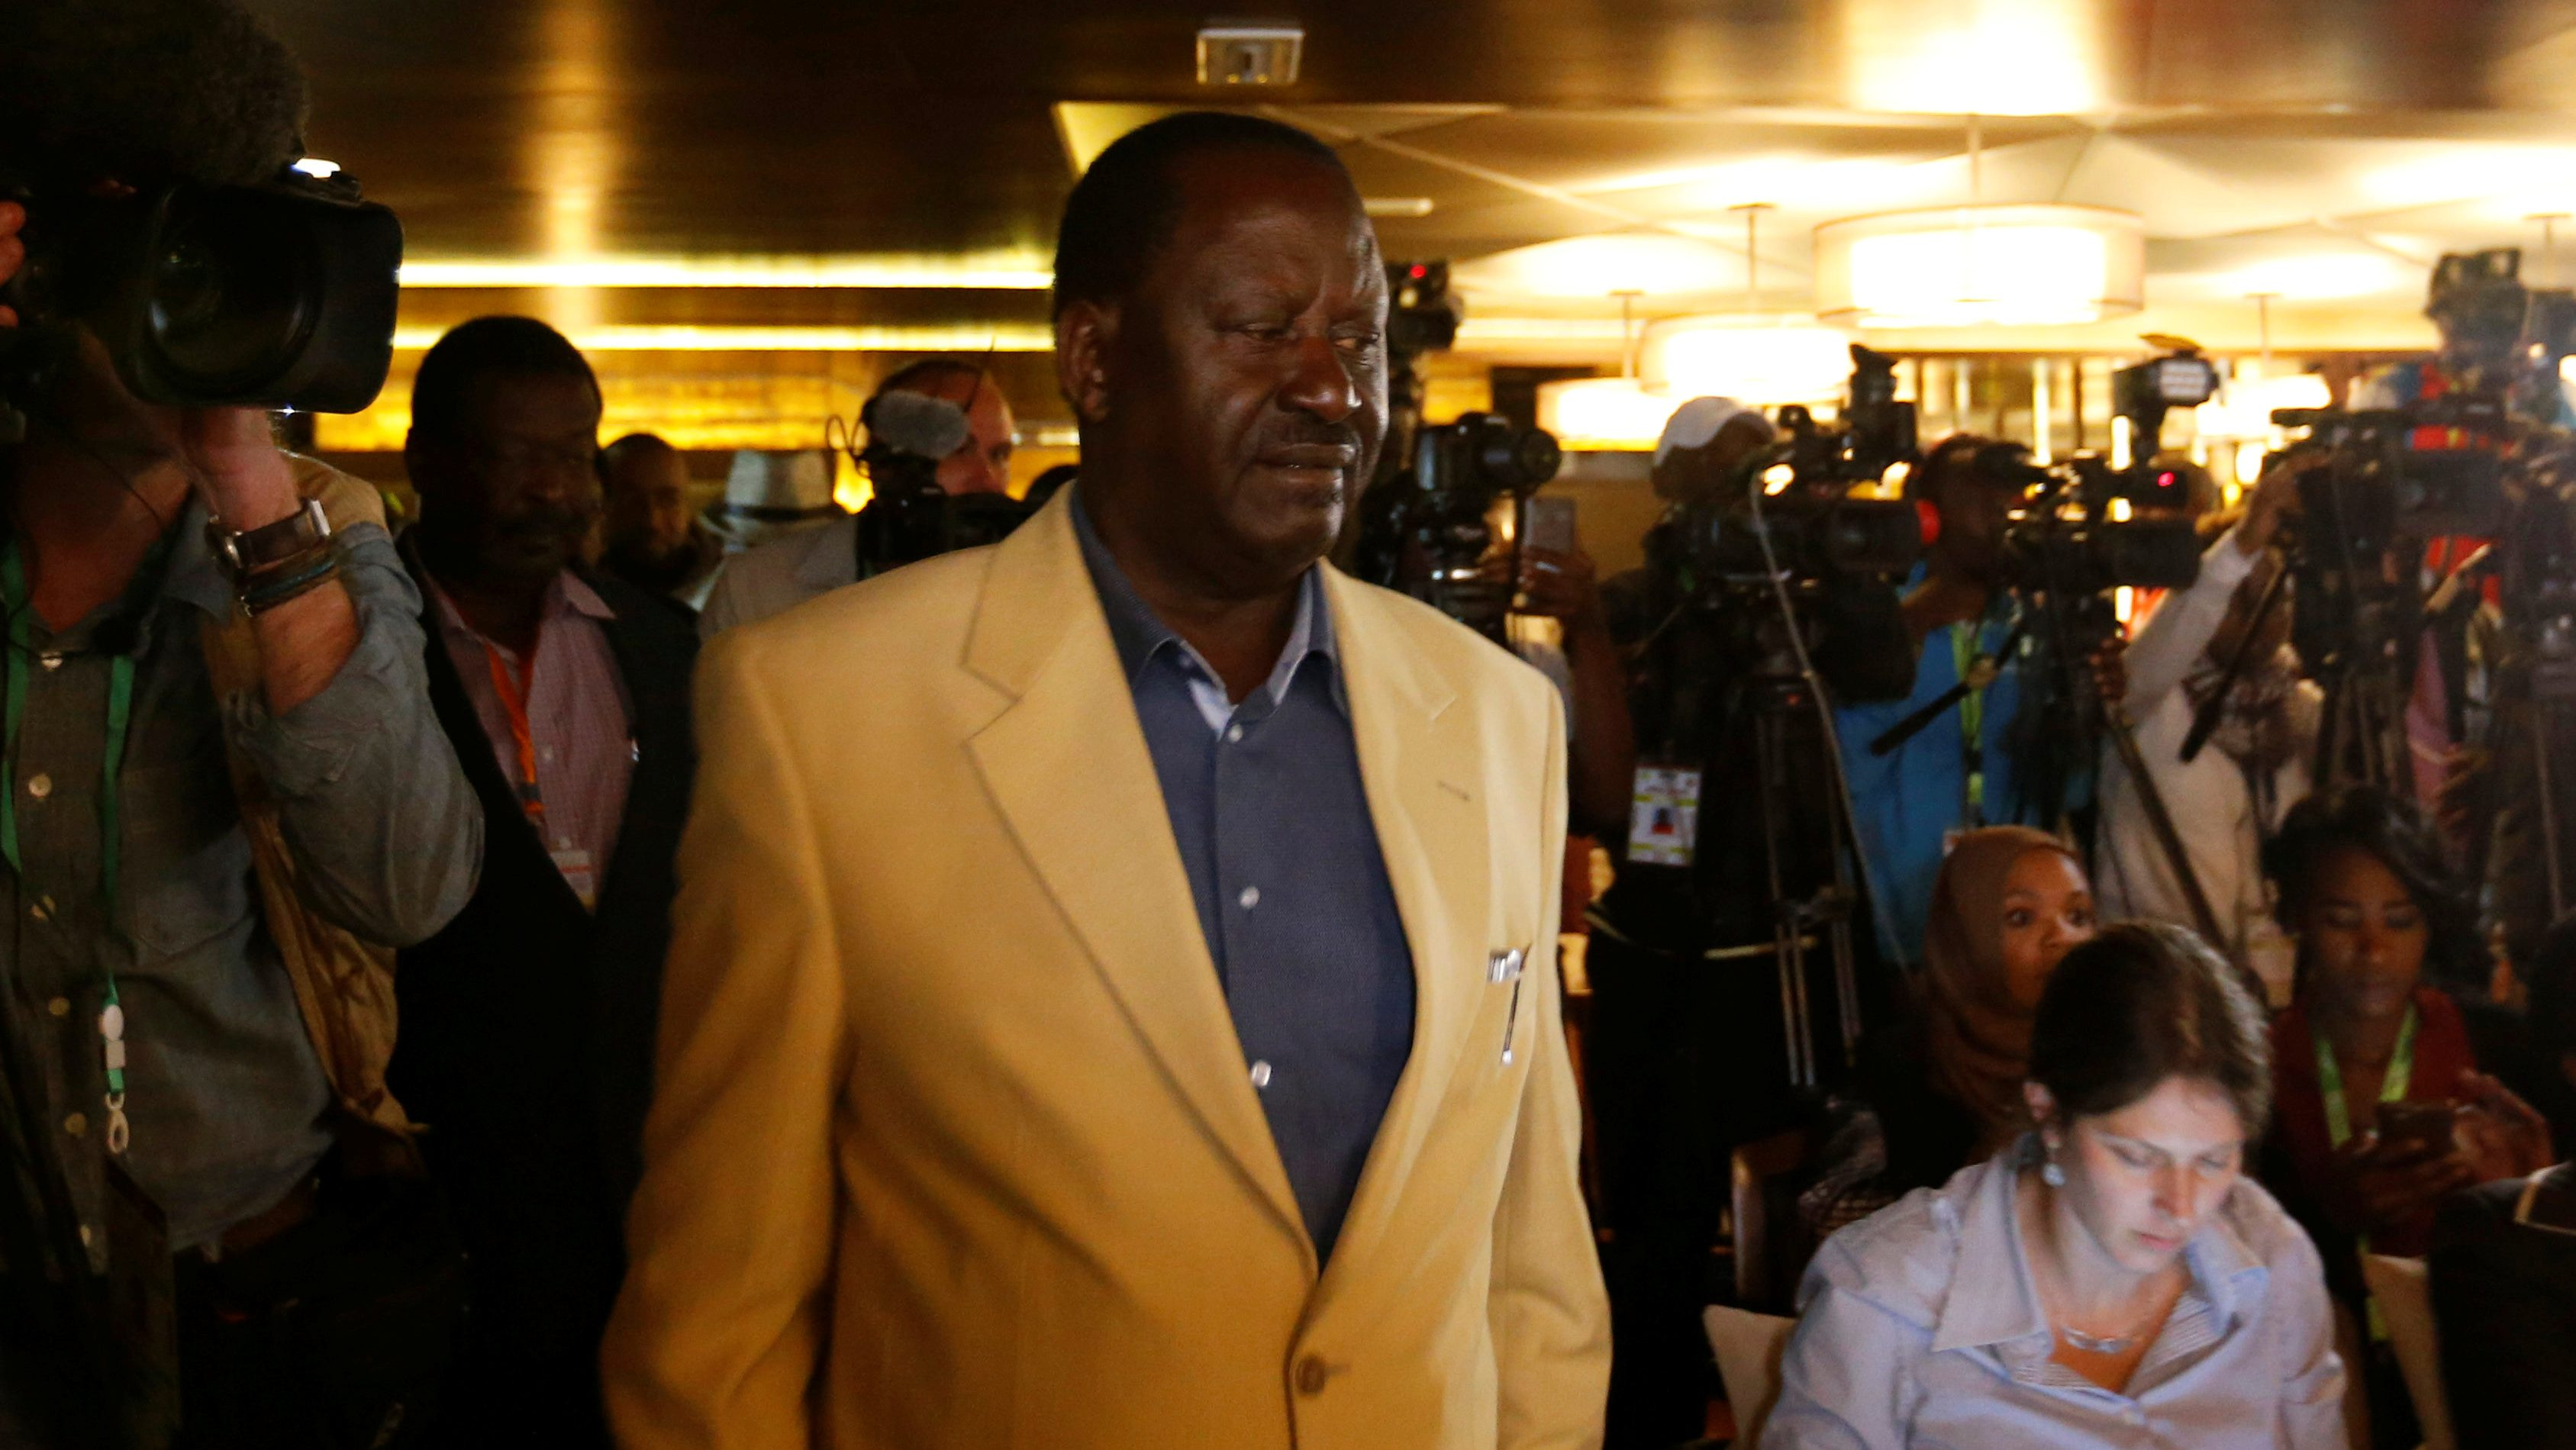 Kenyan opposition leader Raila Odinga, the presidential candidate of the National Super Alliance (NASA) coalition, arrives for a news conference in Nairobi, Kenya August 10, 2017.